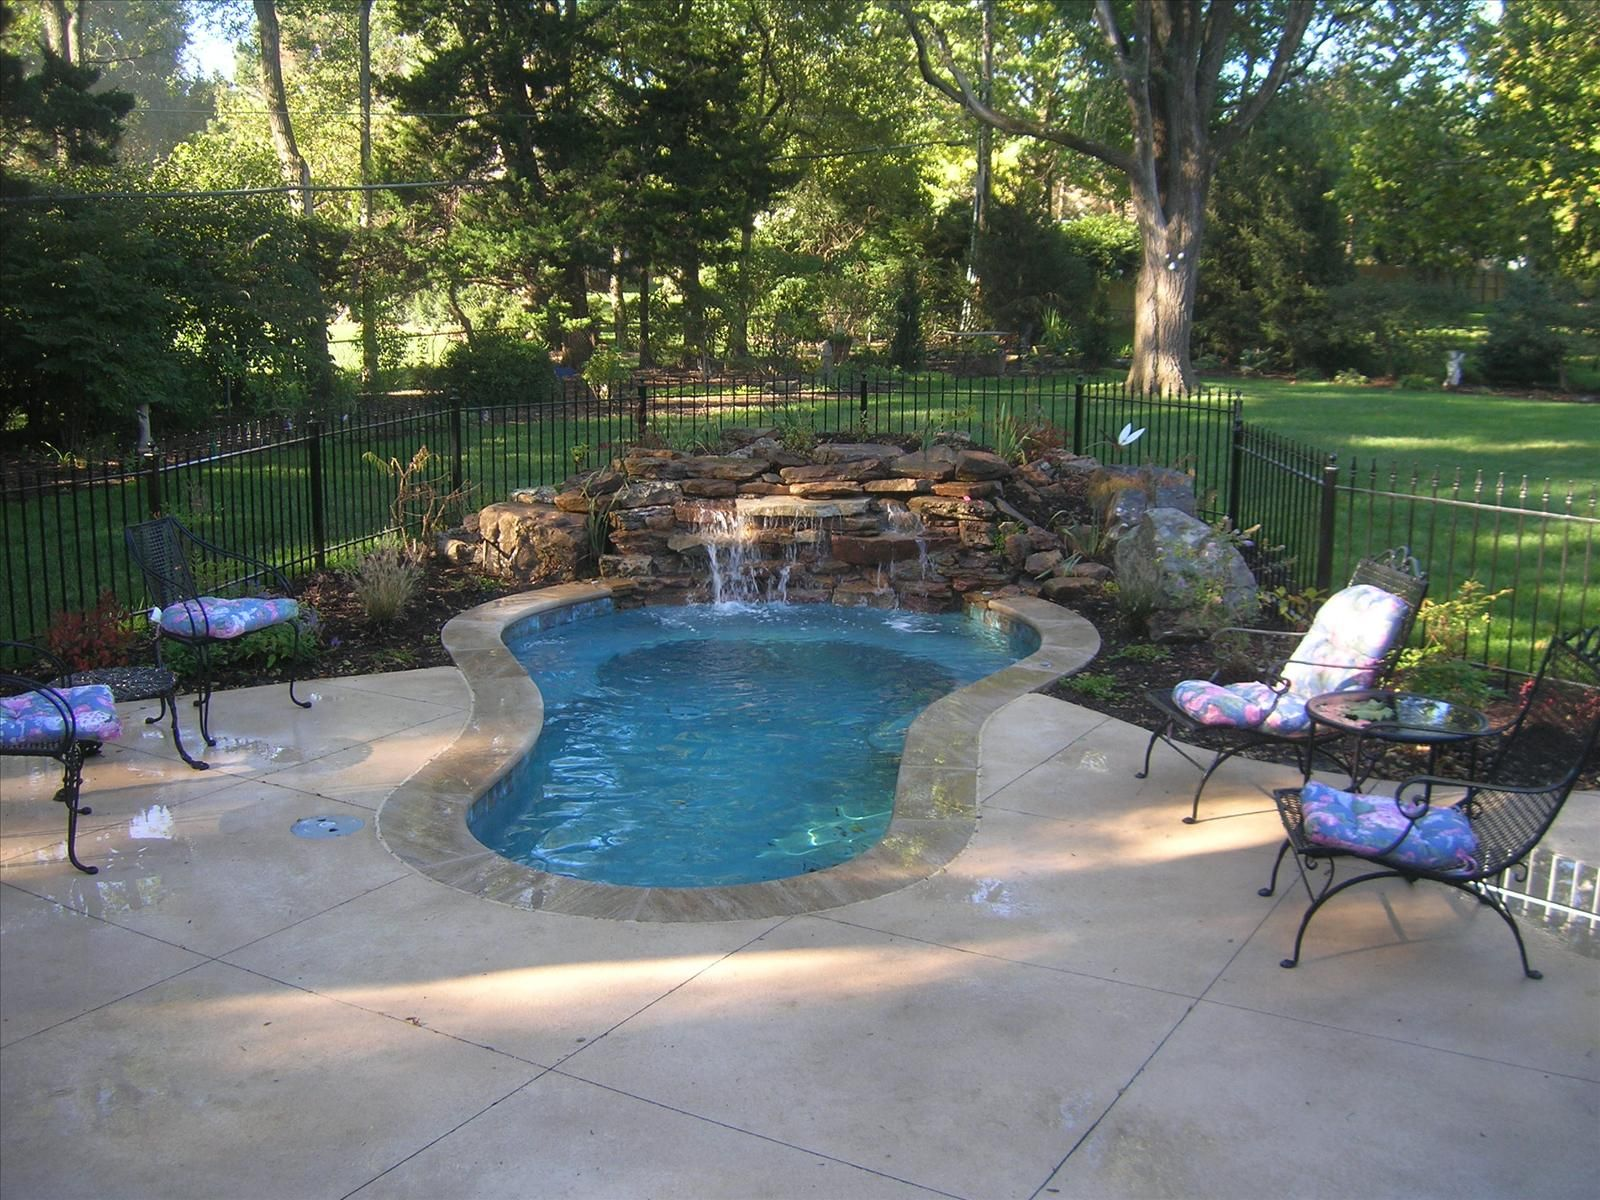 Patio pool perfect small pool dream home pinterest - Small swimming pools for small backyards ...